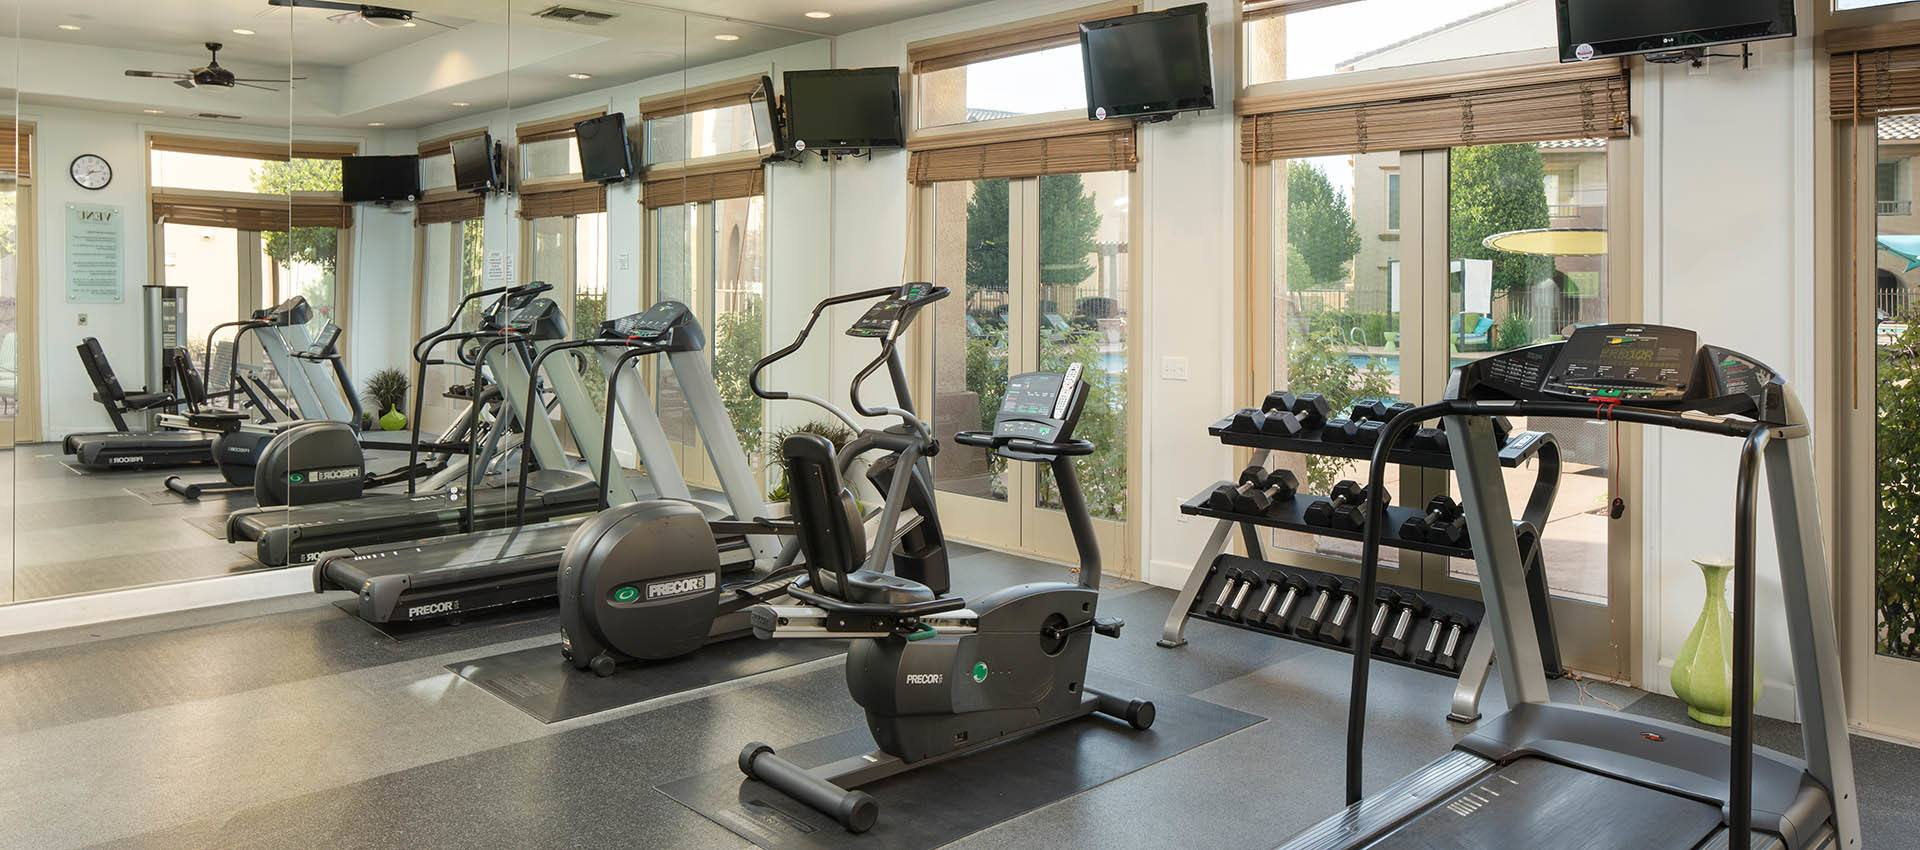 Fitness Center at Venu at Galleria Condominium Rentals in Roseville , California